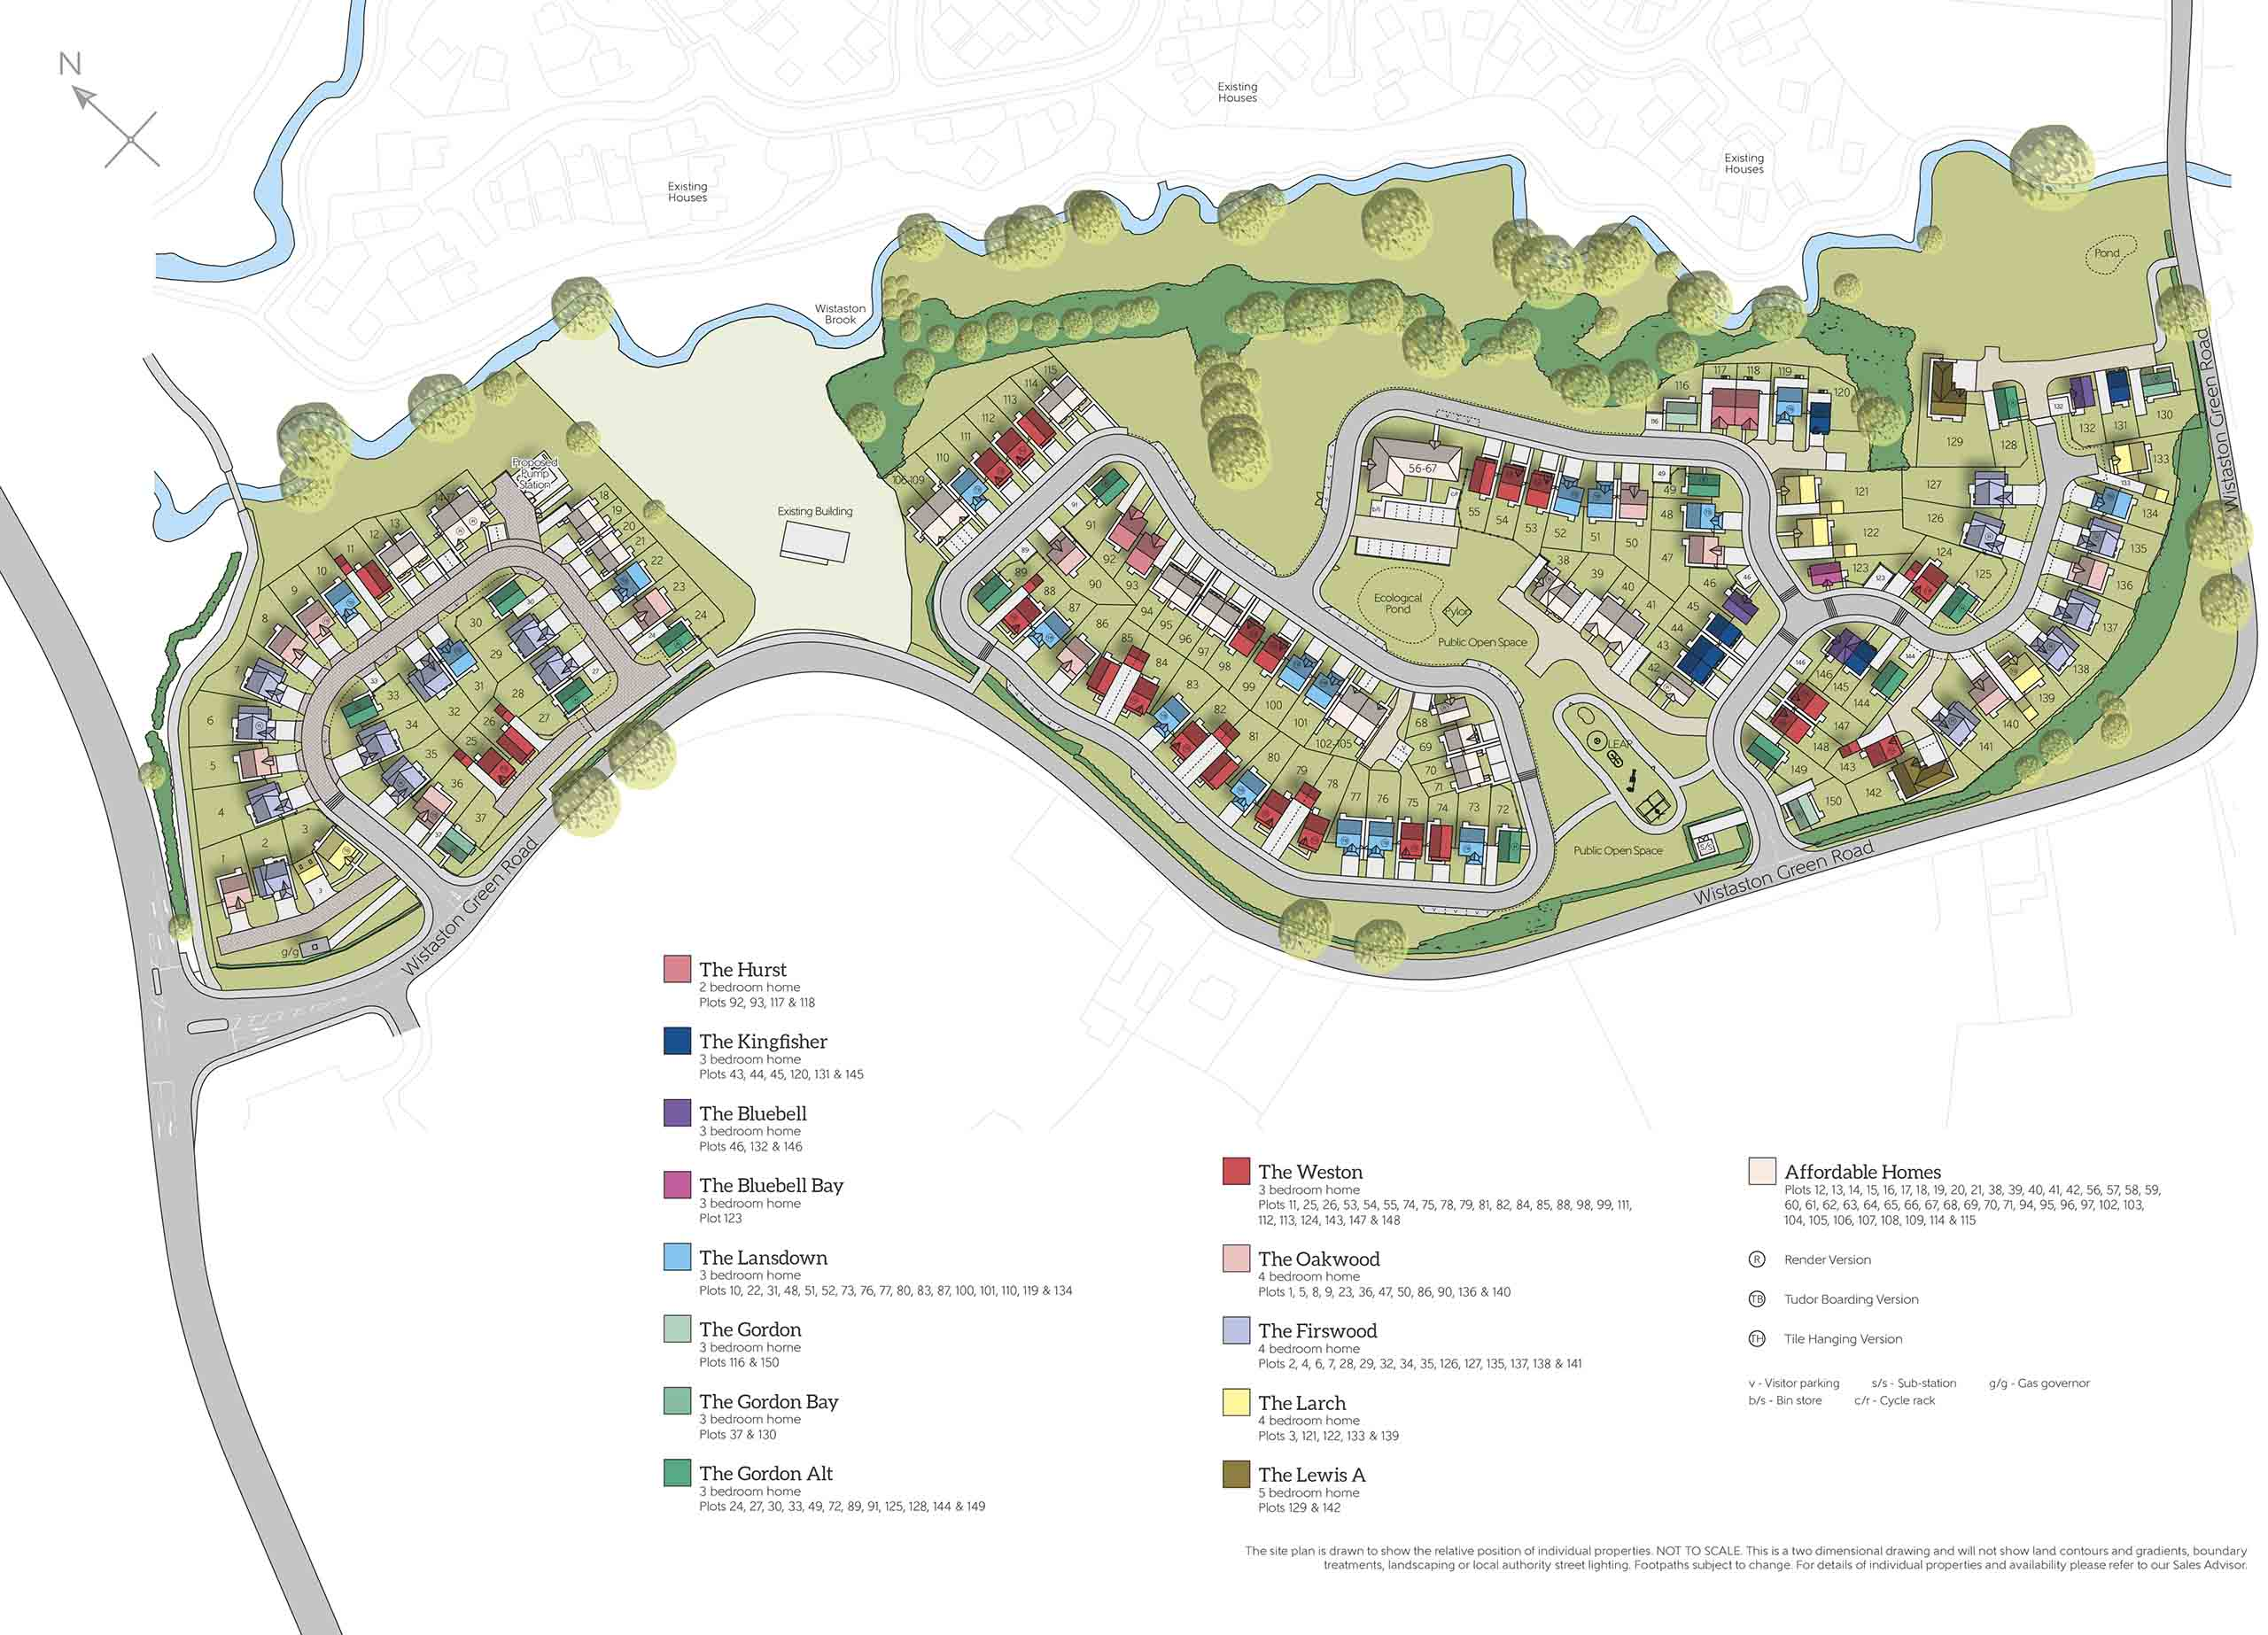 New homes for sale in Wistaston, Cheshire from Bellway Homes